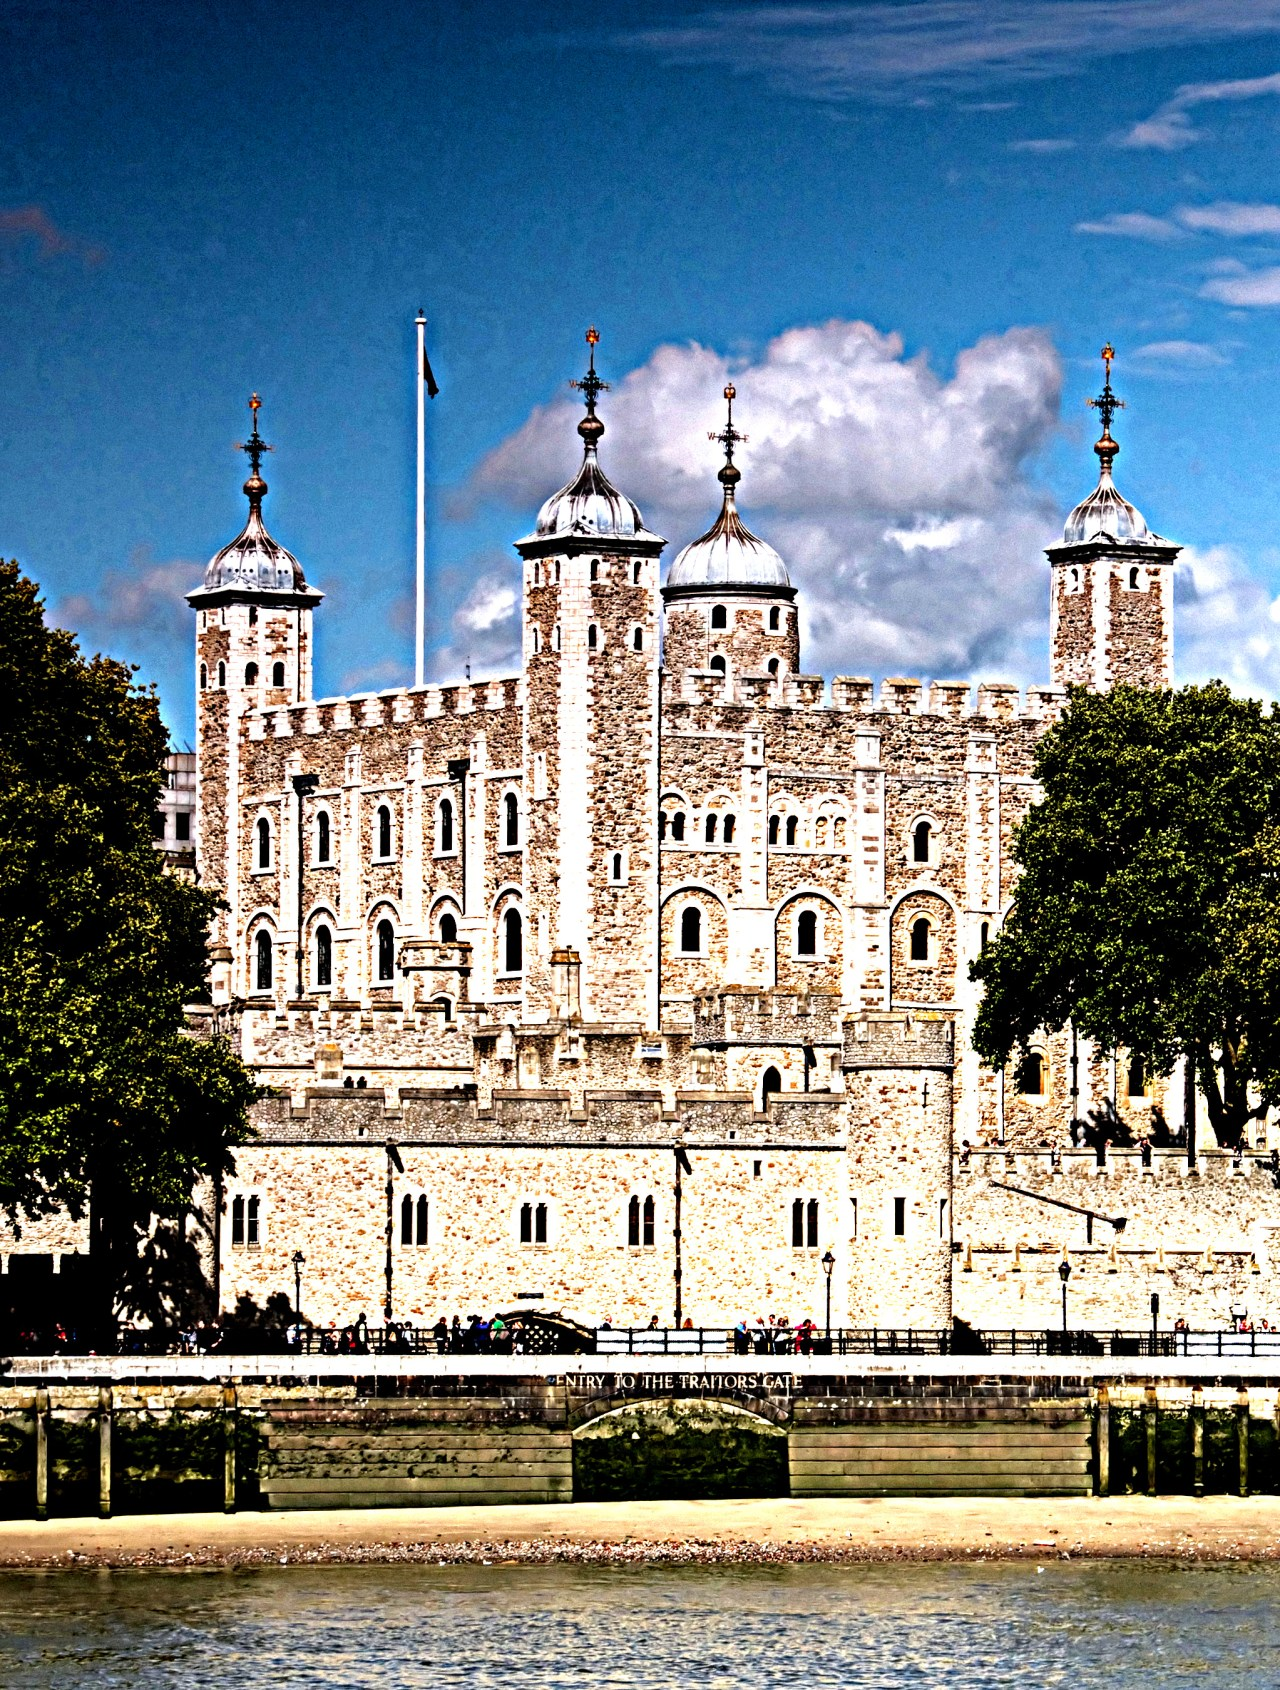 The Tower of London and site of Anne Boleyn's Execution